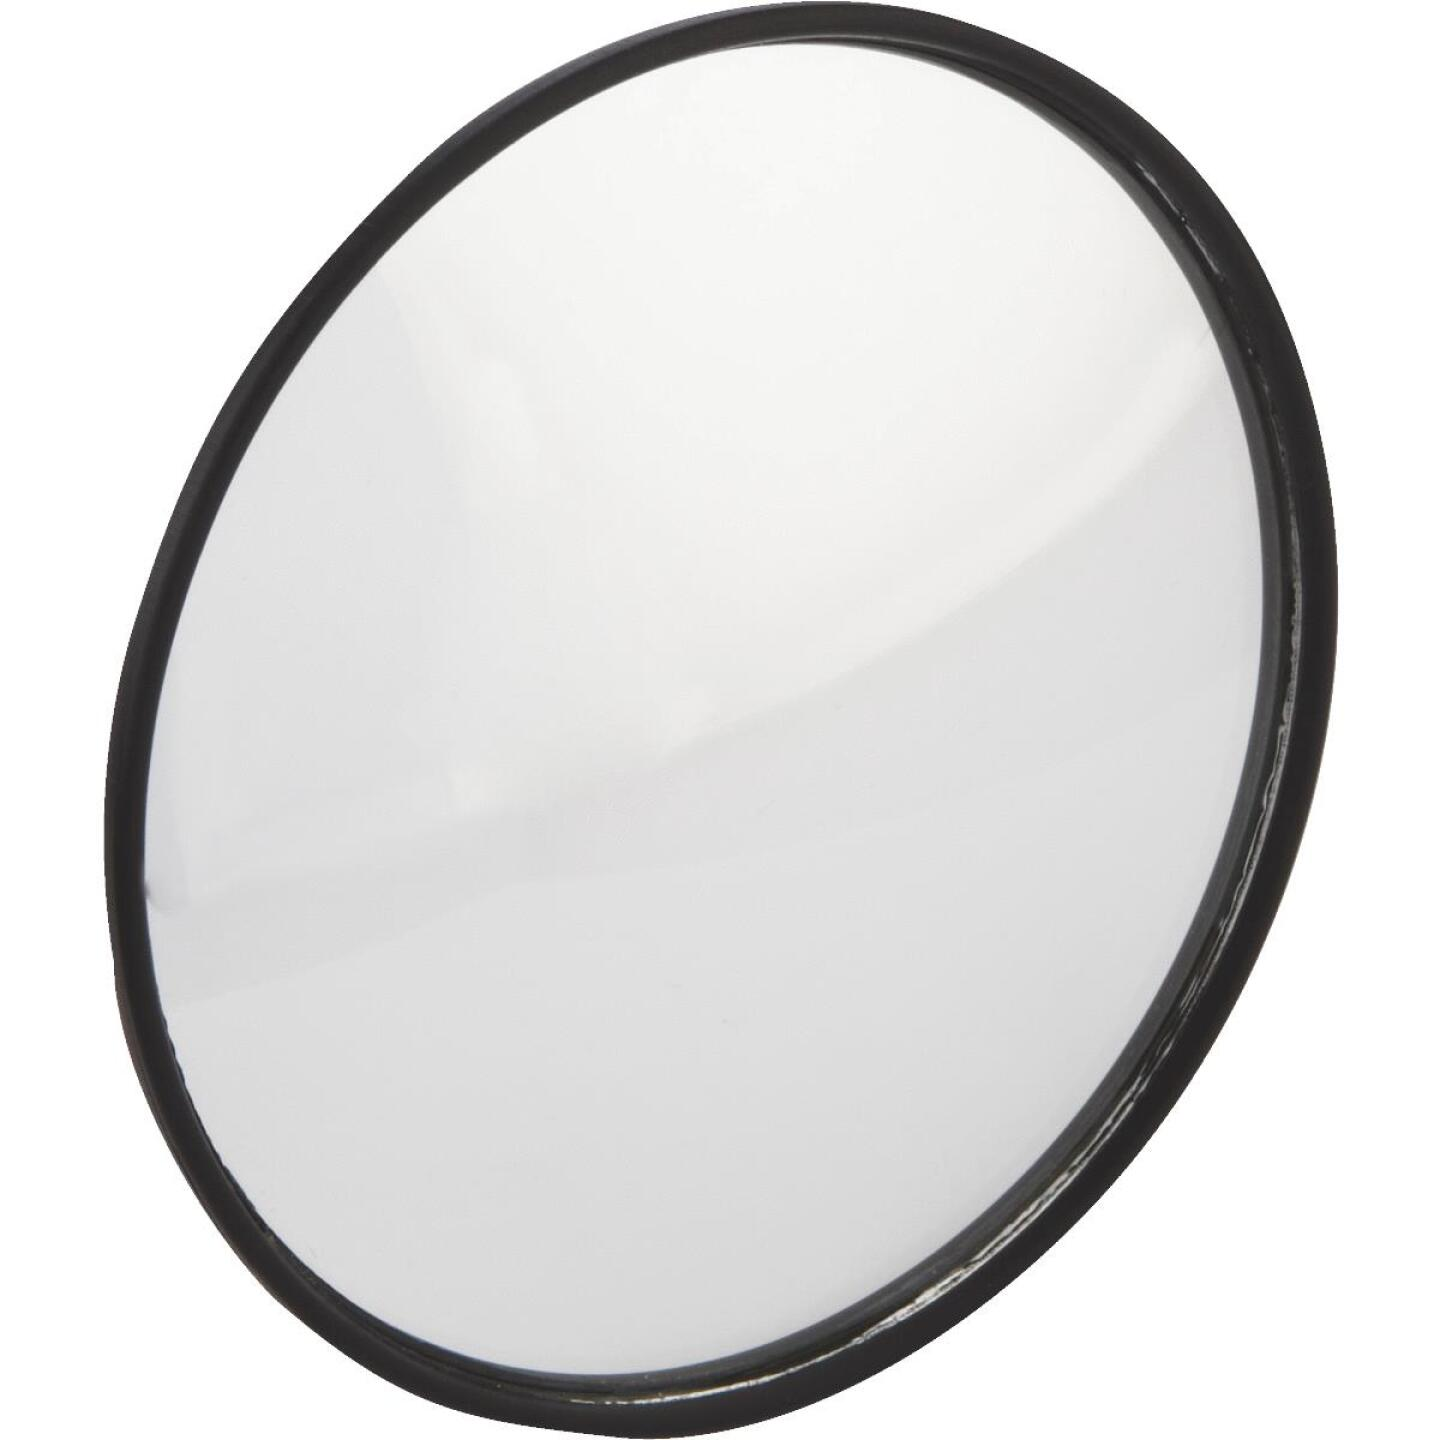 Custom Accessories 3 In. Blind Spot Mirror Image 1